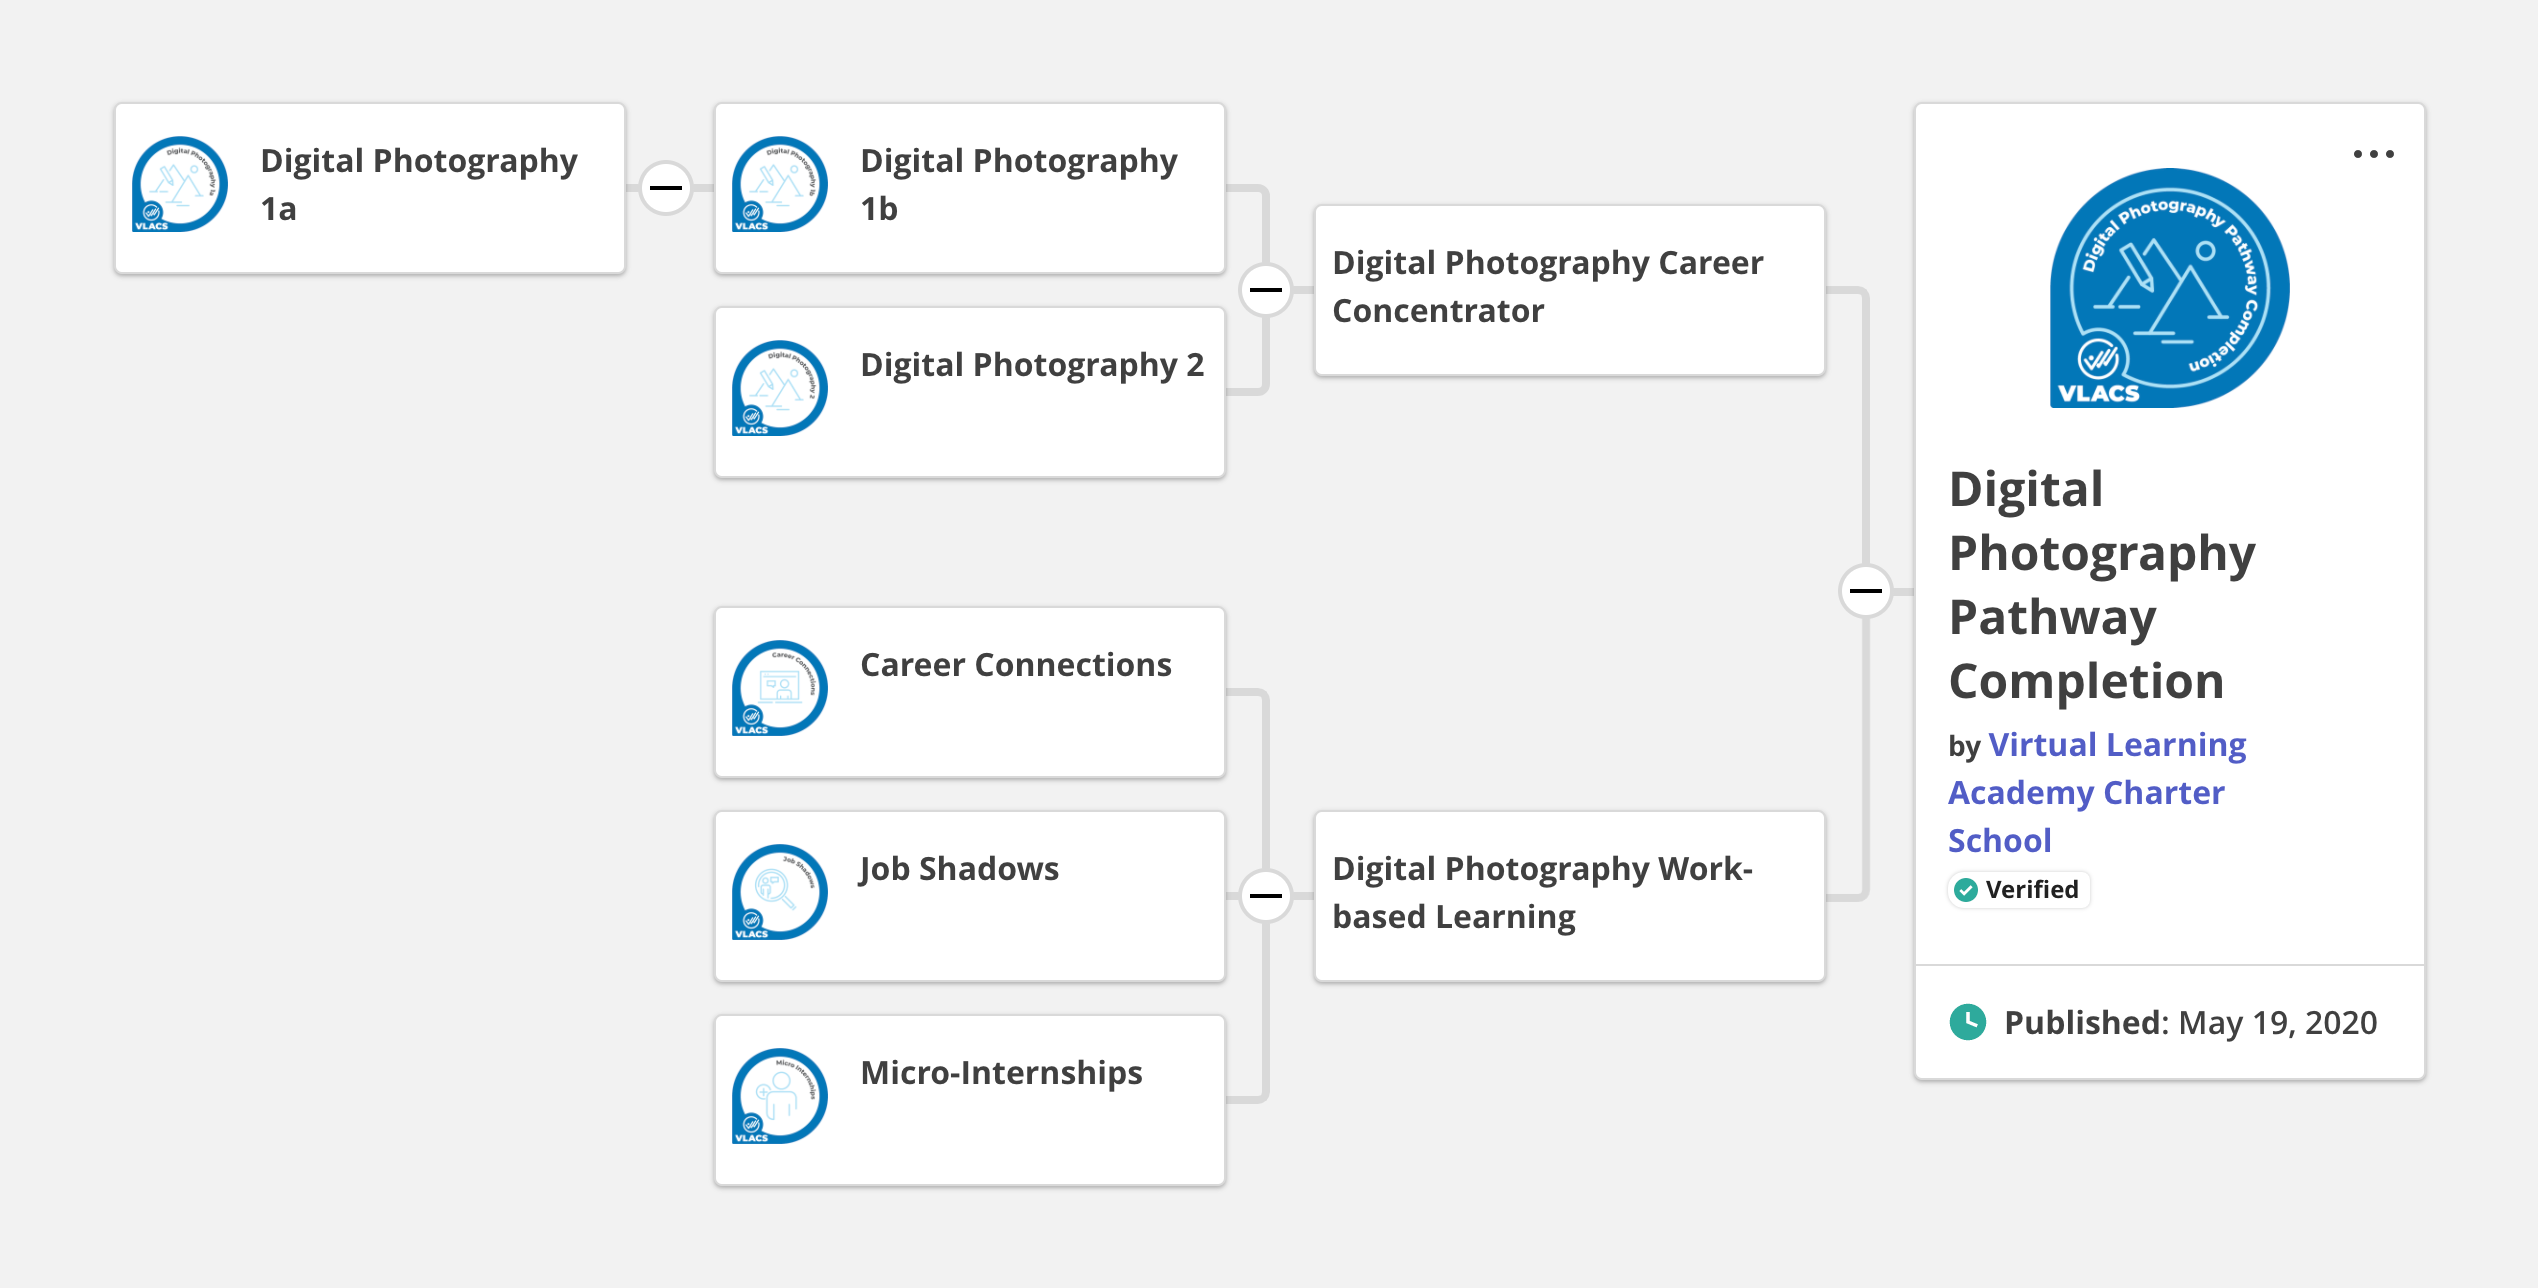 digital photography pathway